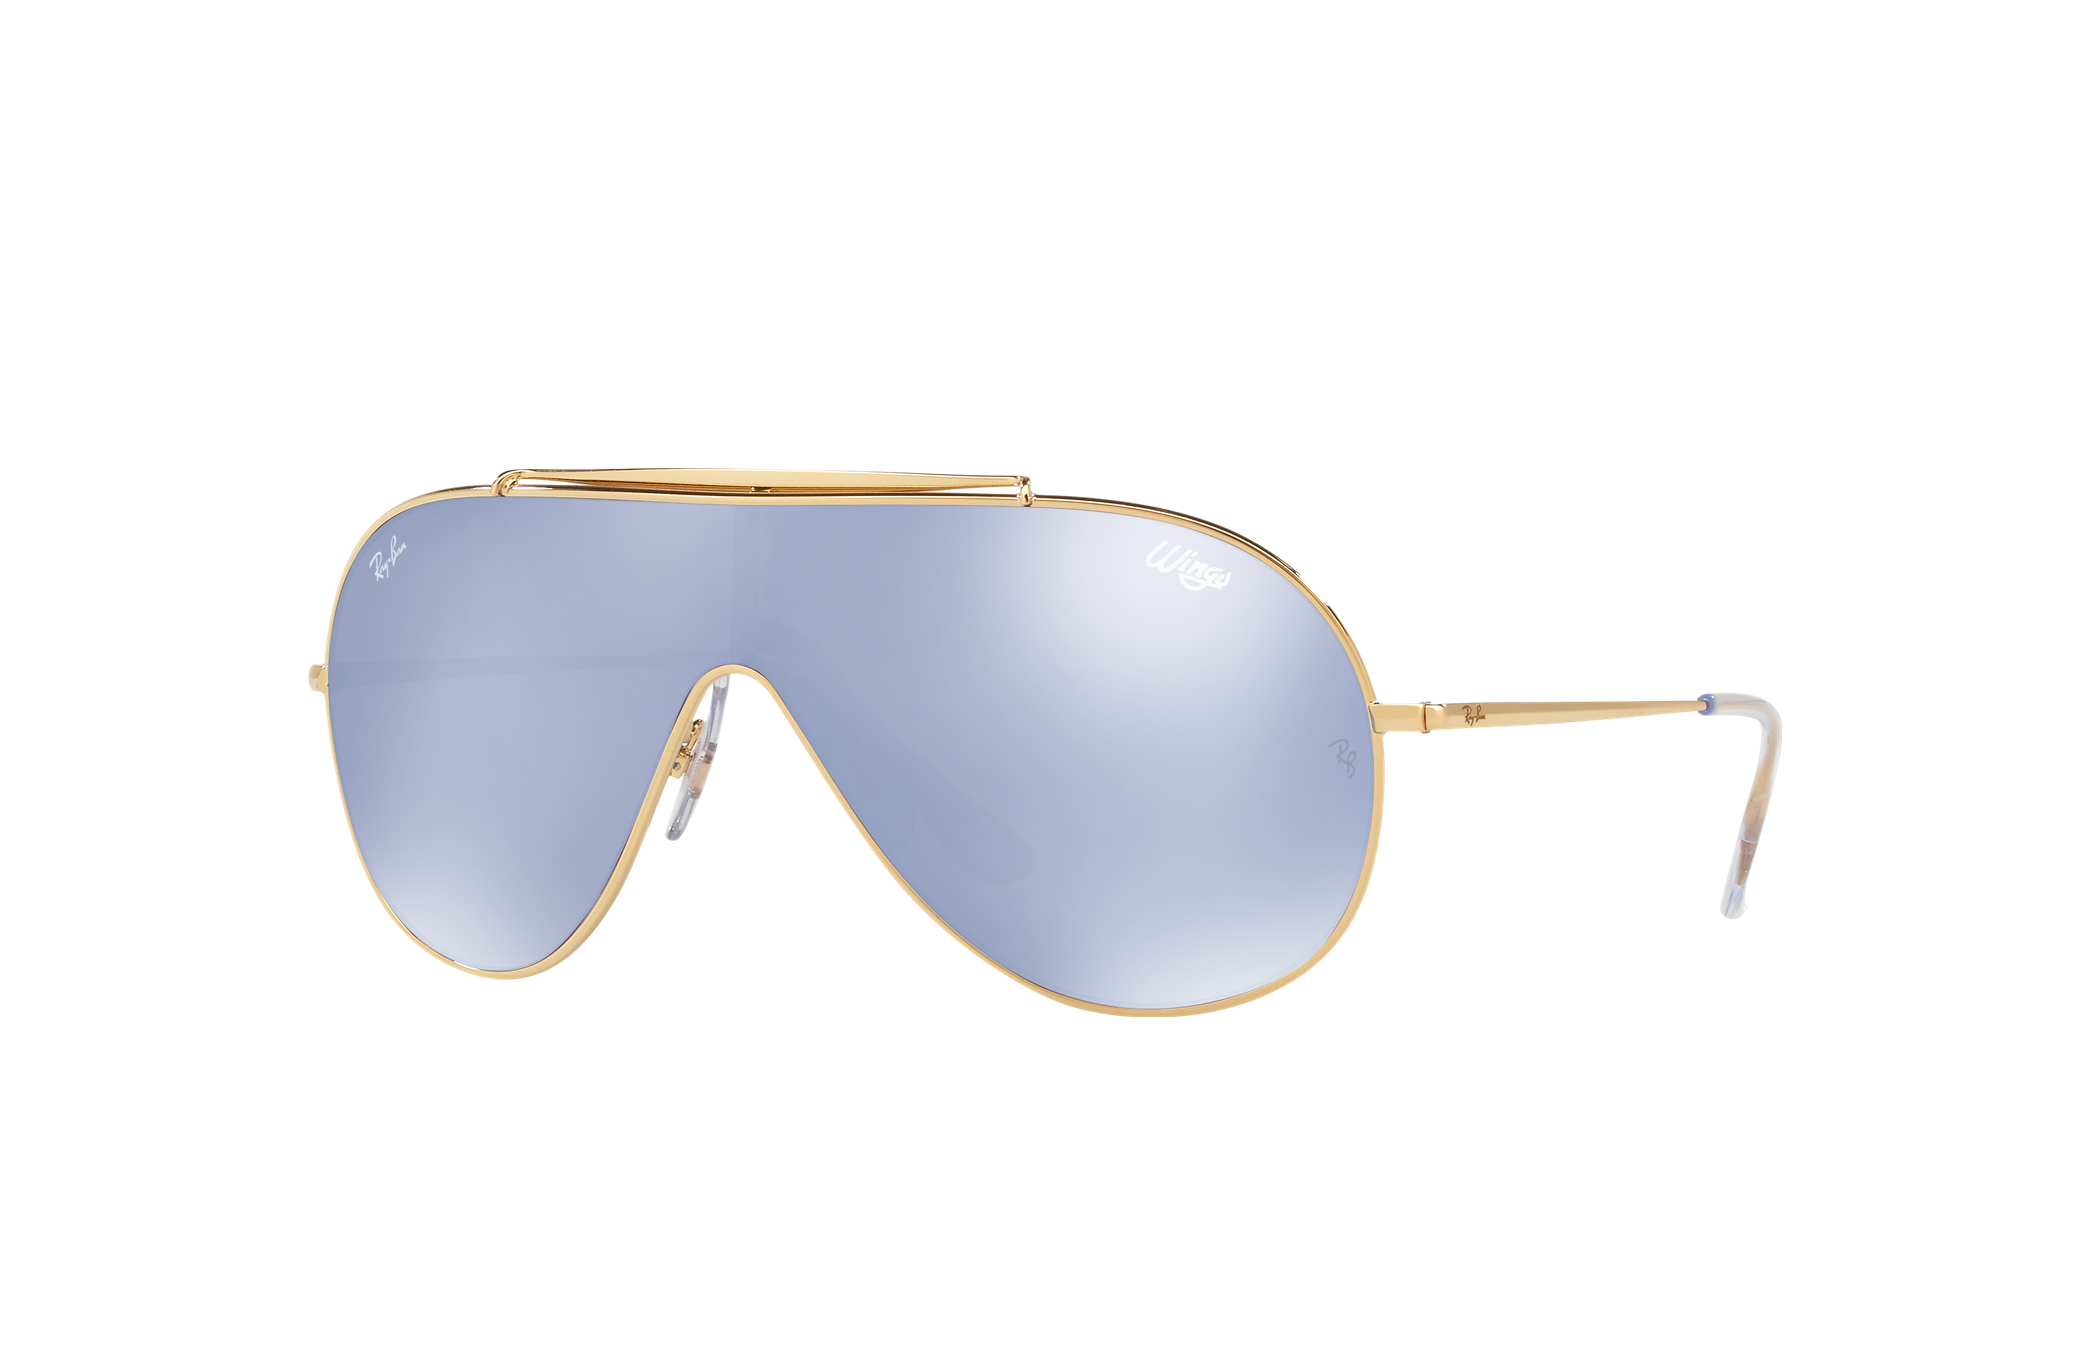 Ray-Ban Wings Gold, Violet Lenses - RB3597